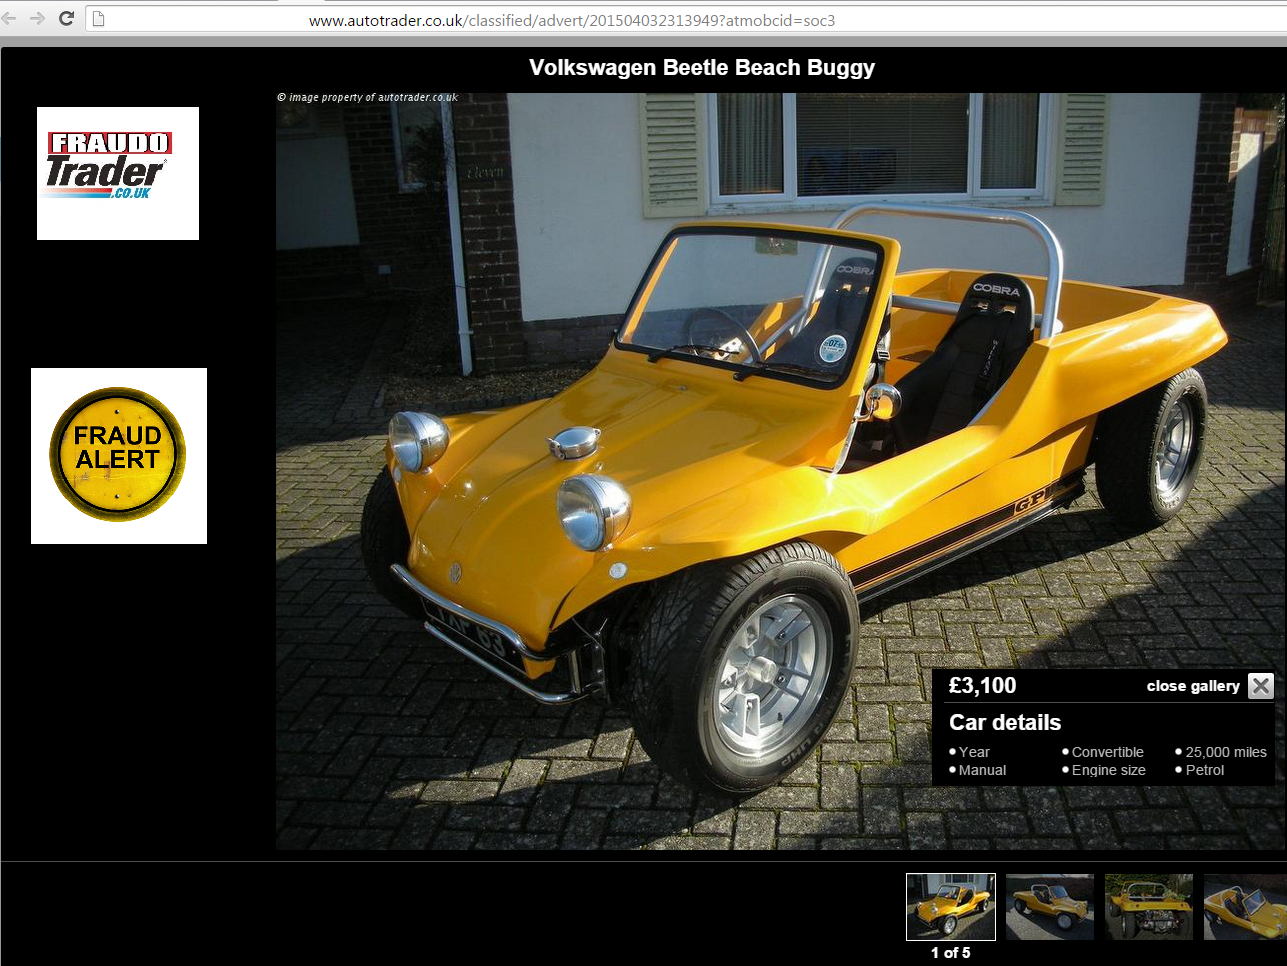 Jack Buster Jack Autotrader Scam Volkswagen Beetle Beach Buggy Yxp63 Fraud Yxp 63 15 Apr 15